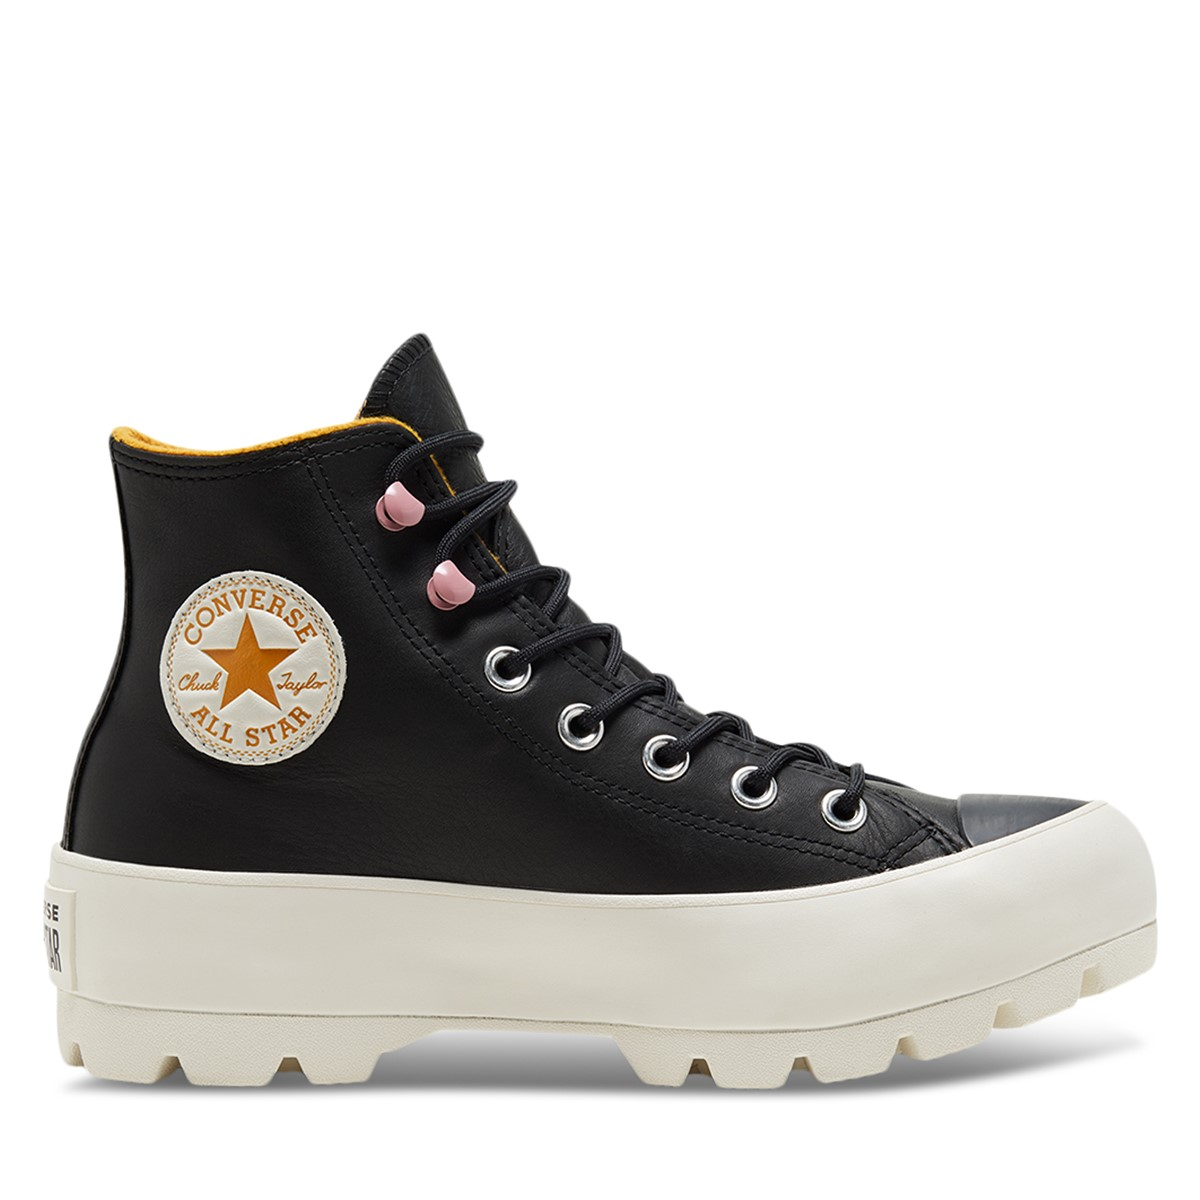 Women's Chuck Taylor Hi GORE-TEX Lugged Sneaker Boots in Black